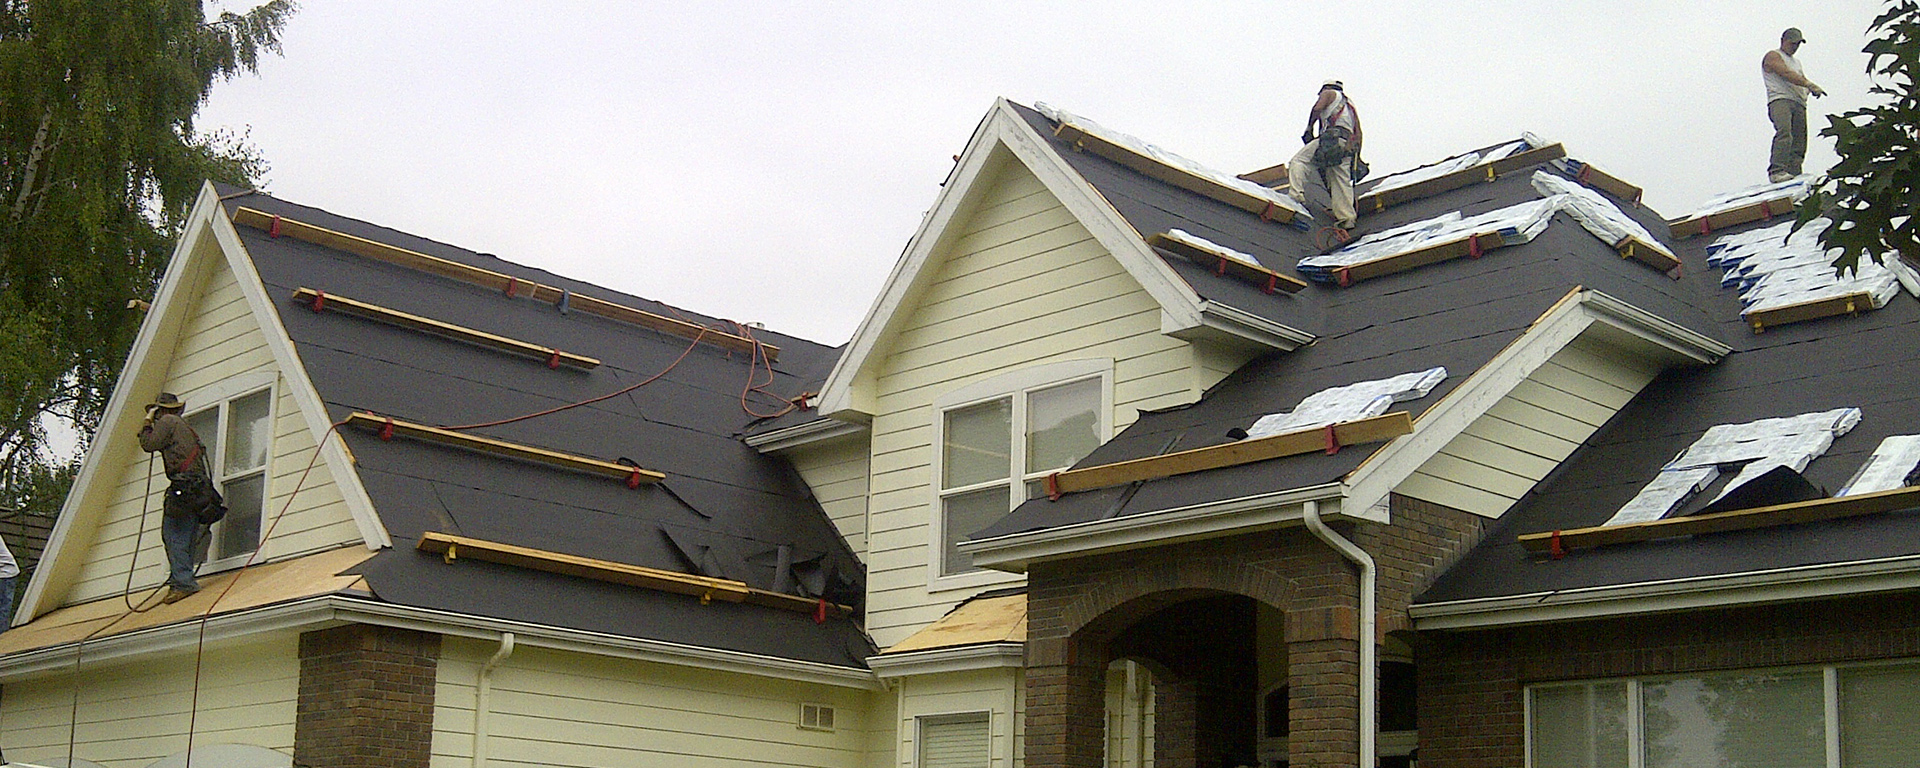 Roofing Siding Albany Or Stutzman And Kropf Contractors